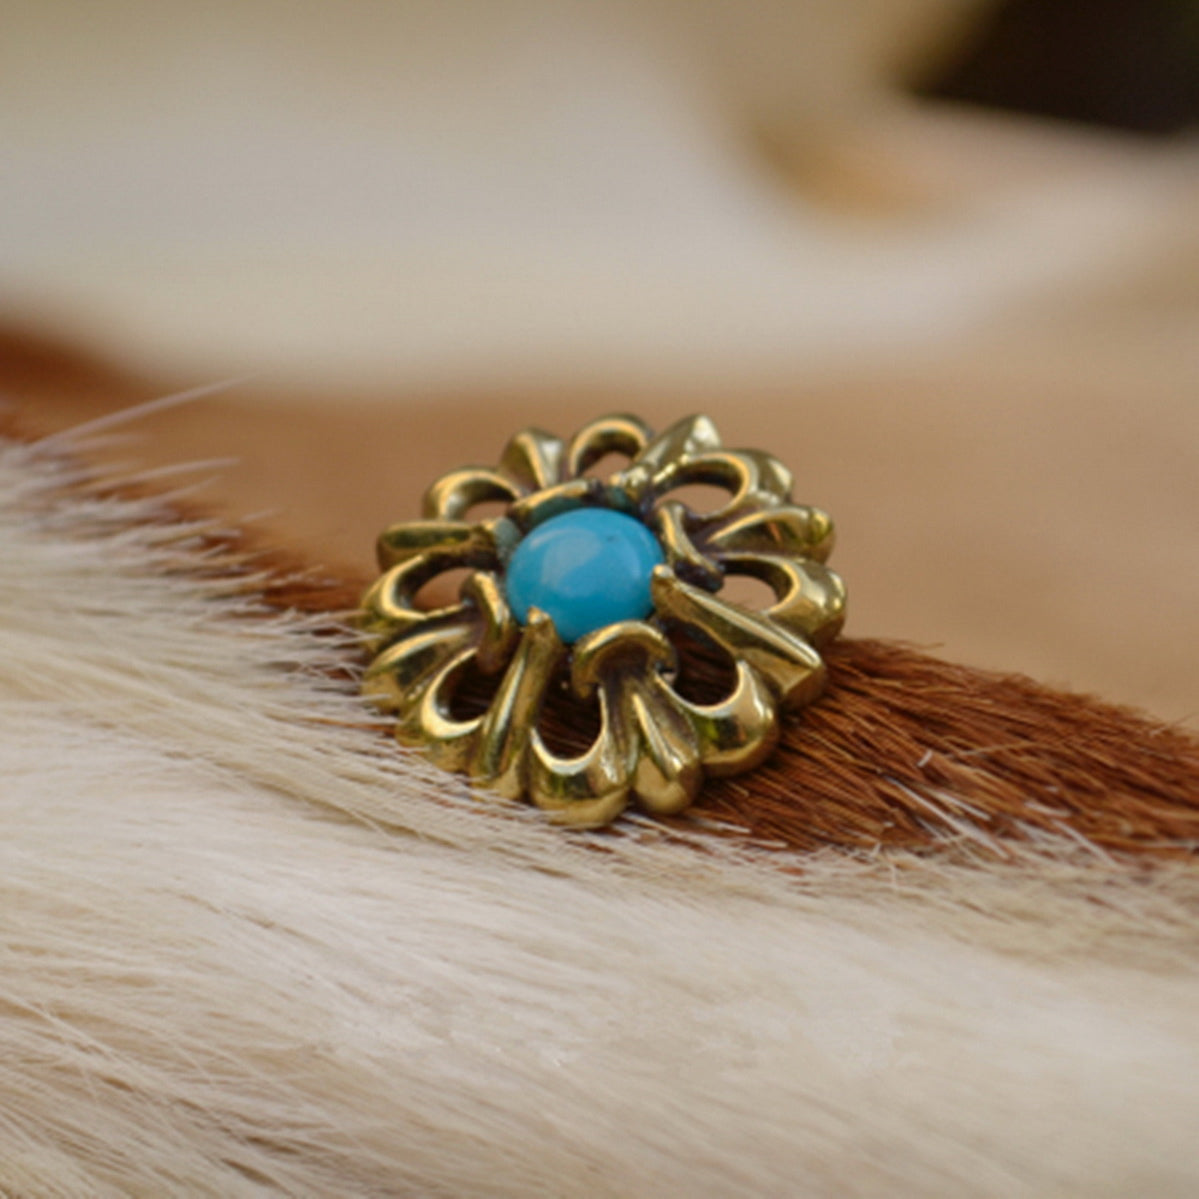 Turquoise Decor Screw Conchos For Leather Crafts Wallets Bag - Metal Field